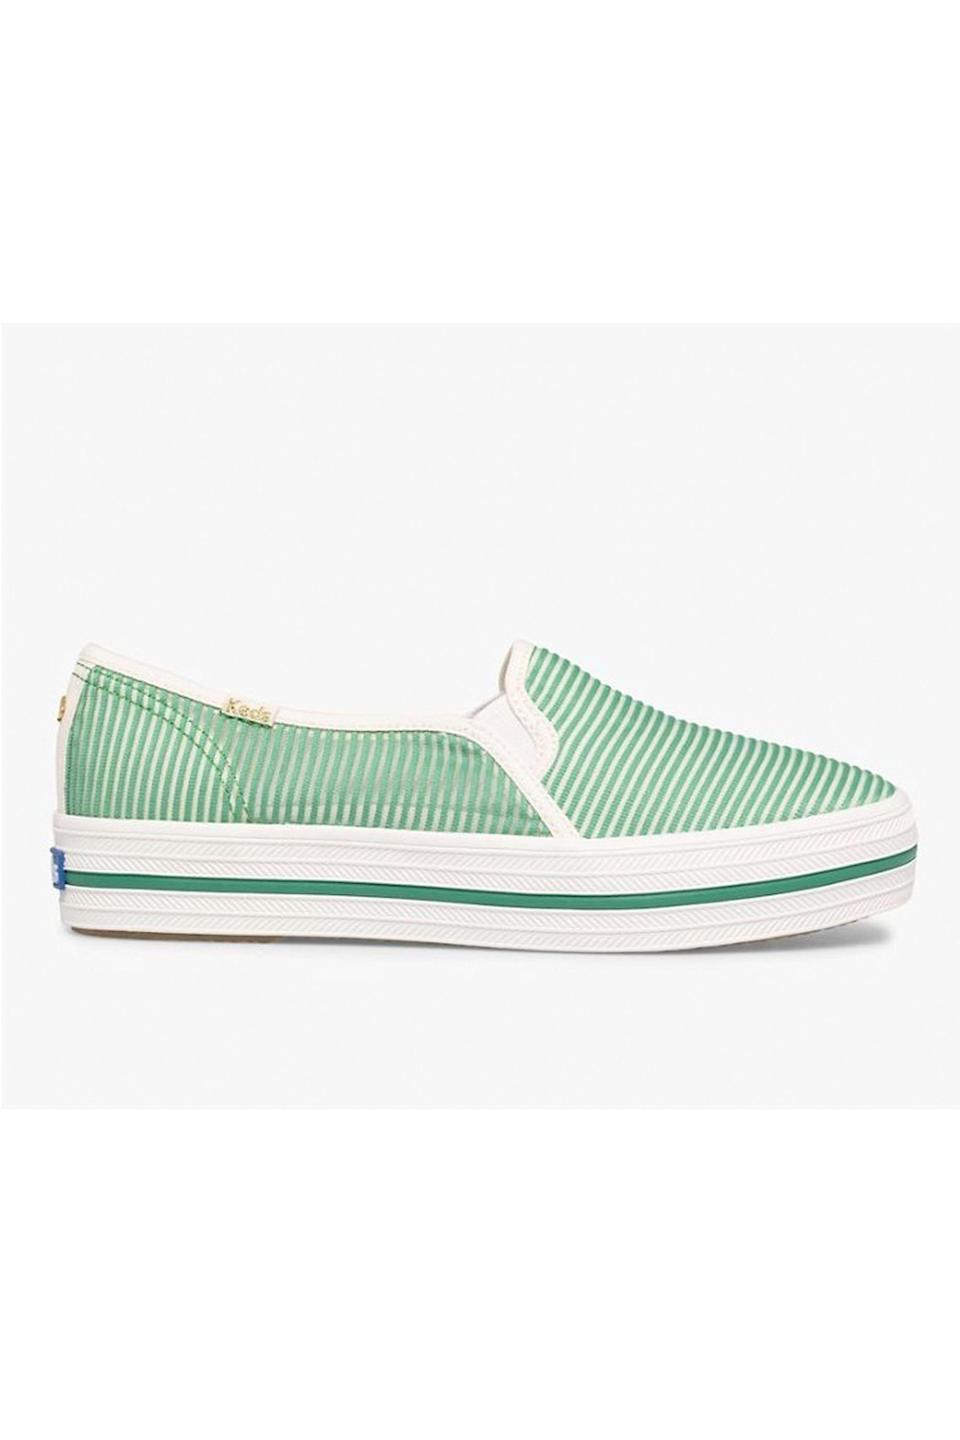 """<p><strong>Keds x Kate Spade New York</strong></p><p>keds.com</p><p><strong>$49.95</strong></p><p><a href=""""https://go.redirectingat.com?id=74968X1596630&url=https%3A%2F%2Fwww.keds.com%2Fen%2Fkeds-x-kate-spade-new-york-triple-decker-stripe-mesh%2F47879W.html&sref=https%3A%2F%2Fwww.cosmopolitan.com%2Fstyle-beauty%2Ffashion%2Fg36052314%2Fstepmom-gifts%2F"""" rel=""""nofollow noopener"""" target=""""_blank"""" data-ylk=""""slk:Shop Now"""" class=""""link rapid-noclick-resp"""">Shop Now</a></p><p>For a stepmom always on the go, these Keds x Kate Spade New York slip-on sneakers are *chef's kiss.*</p>"""